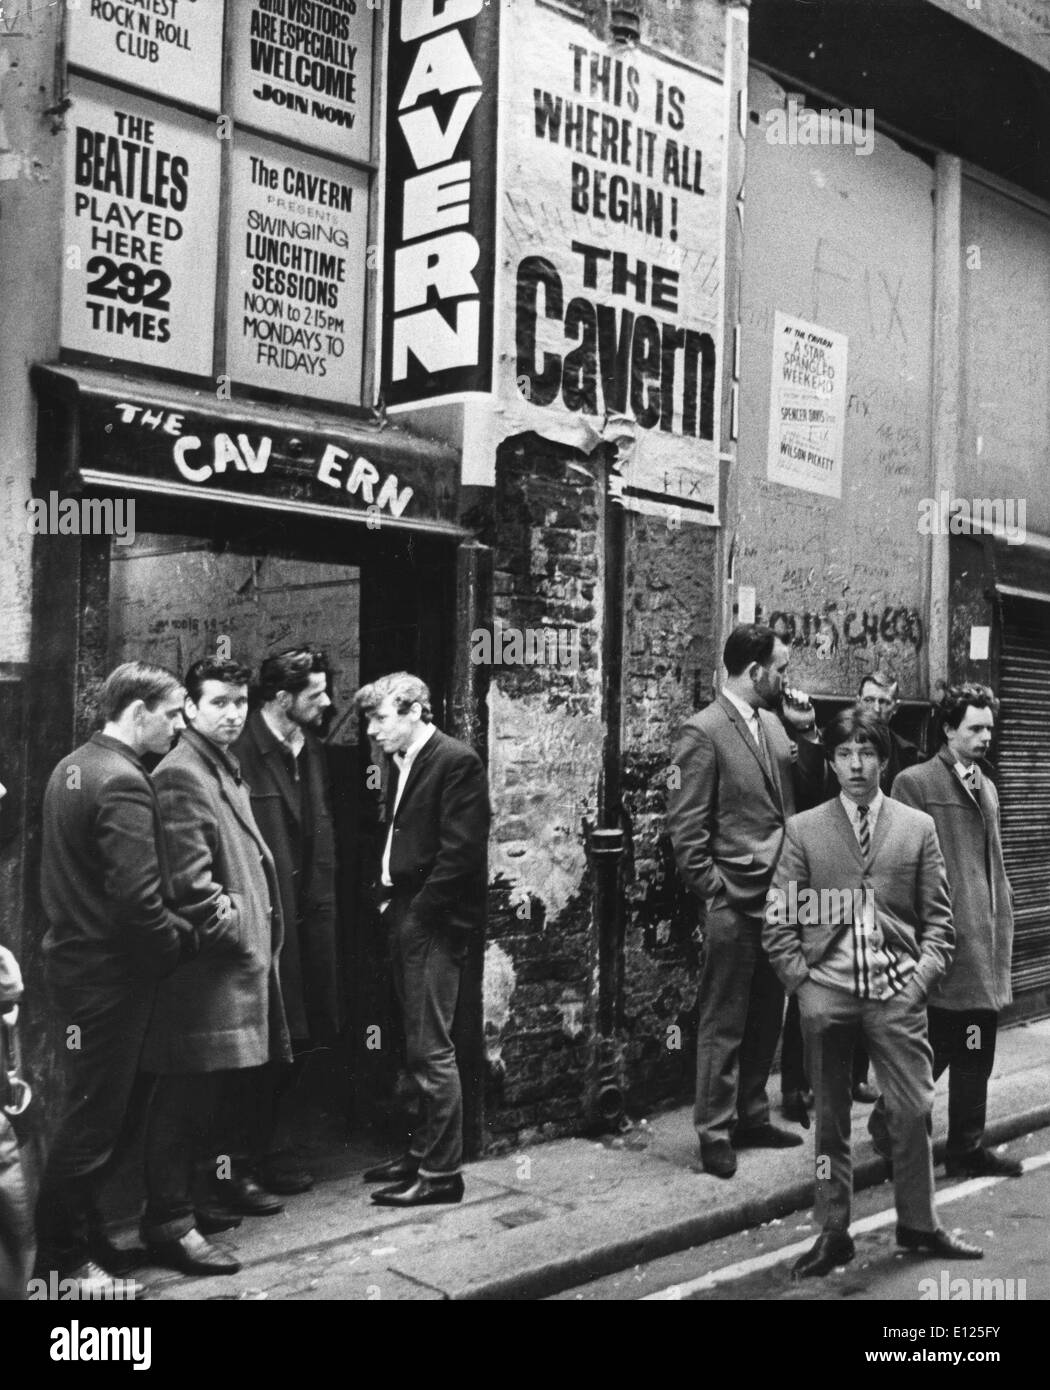 The famous venue The Cavern in 1960s - Stock Image